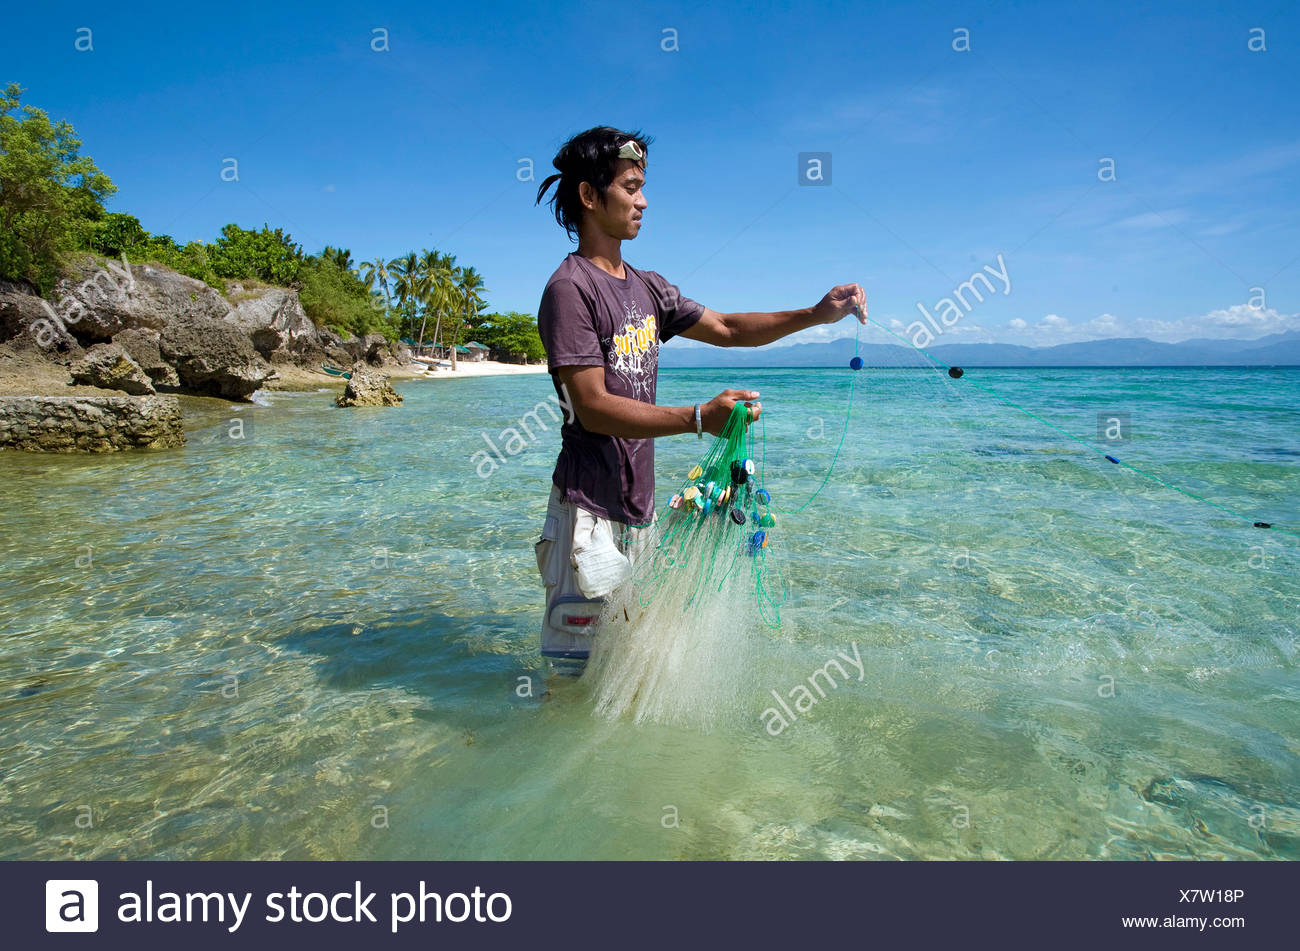 Philippine fisherman catching small bait fish with a net, White Beach, Moalboal, Cebu, Philippines, Indo-Pacific region, Asia - Stock Image